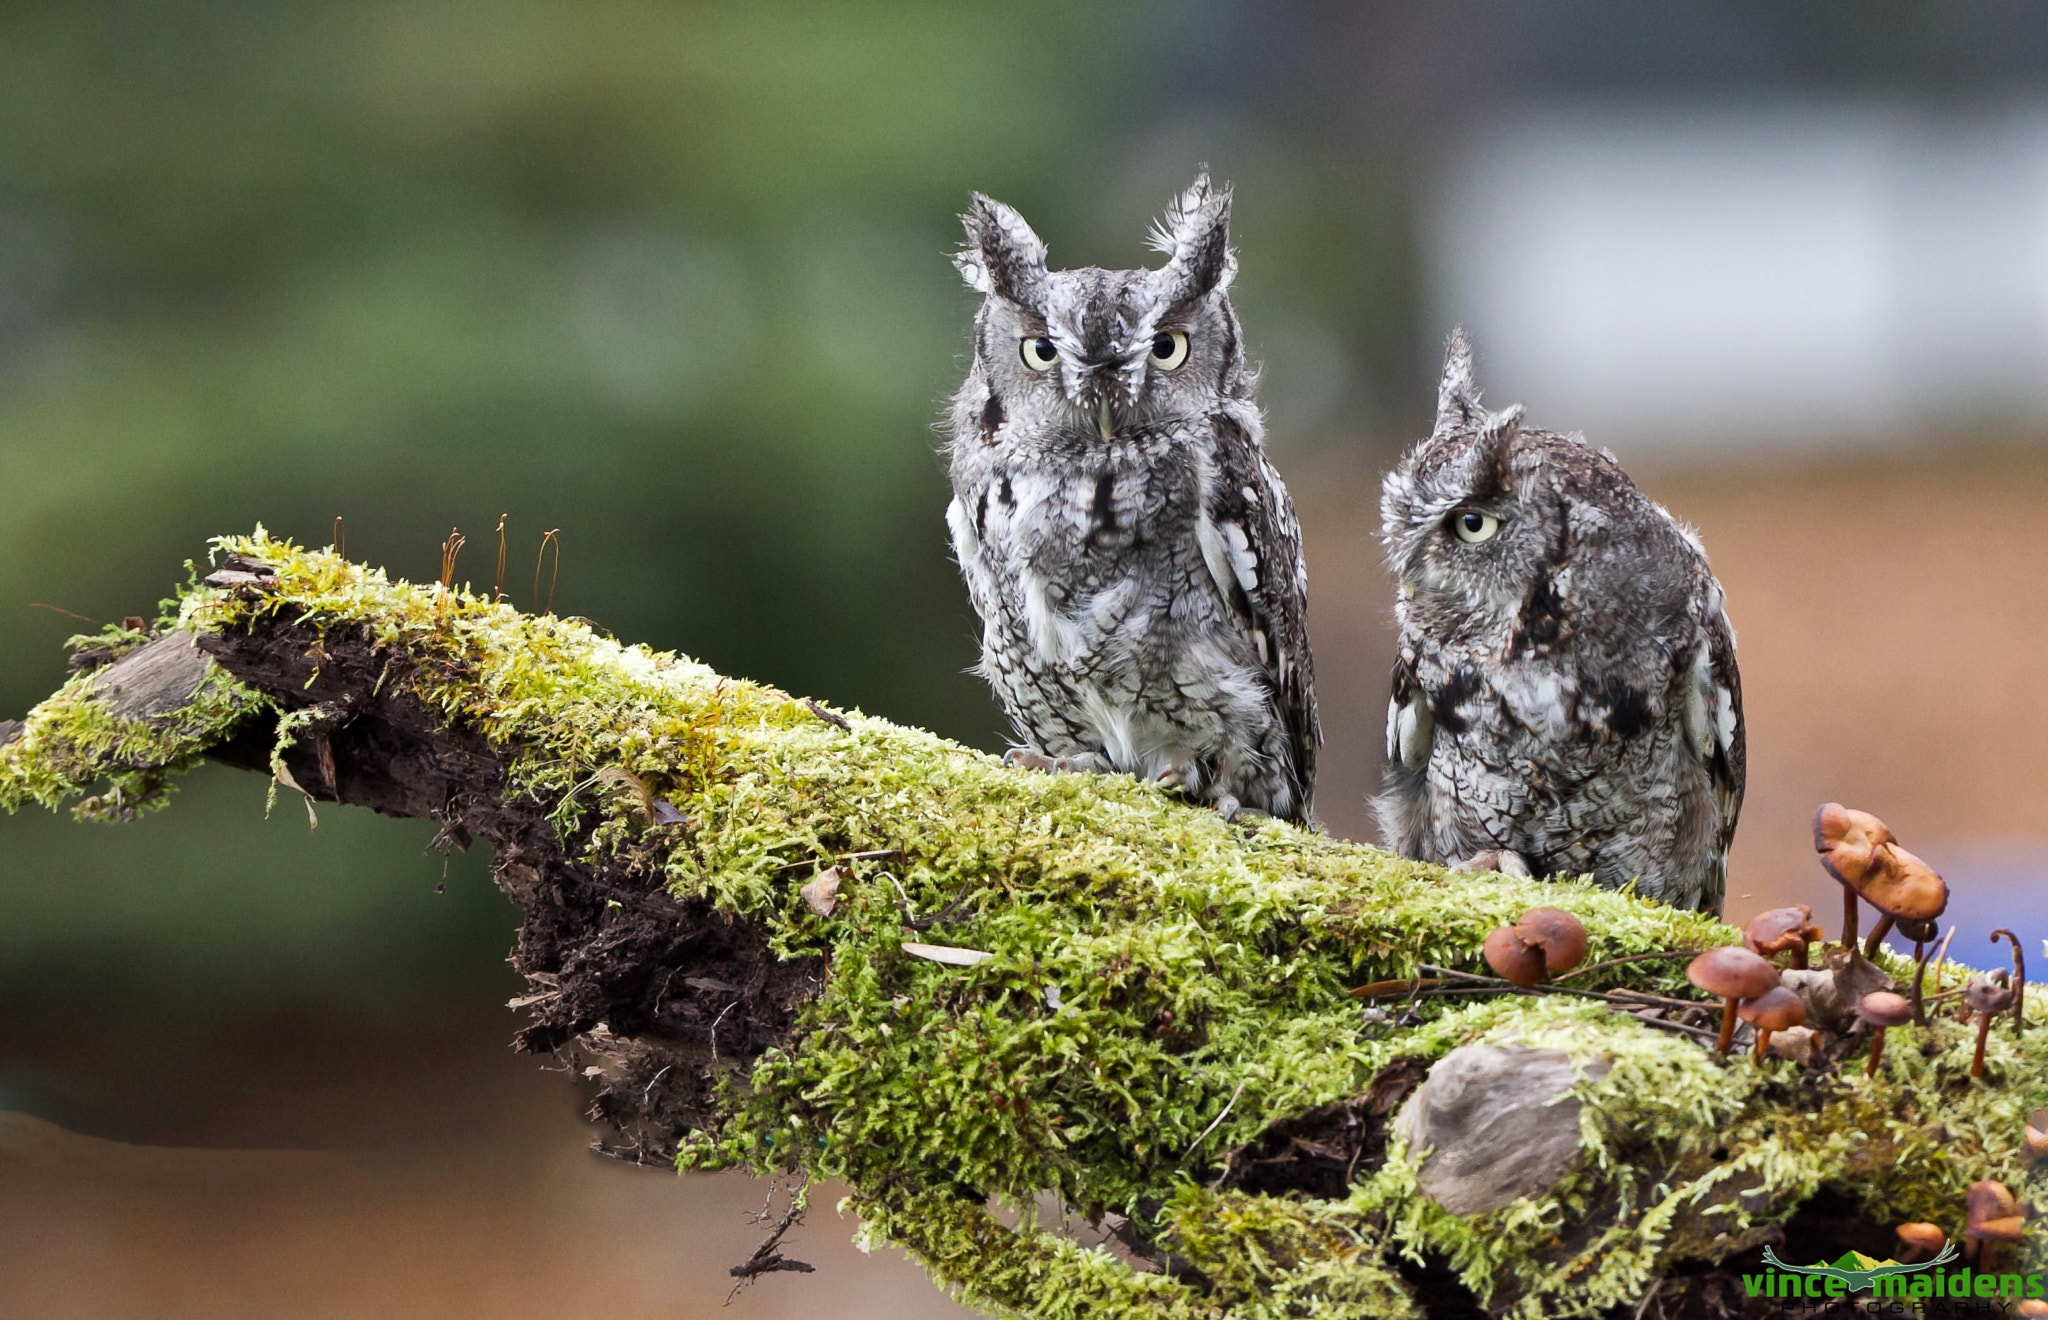 Photograph Bumps on a log - Eastern Screech Owls by Vince Maidens on 500px